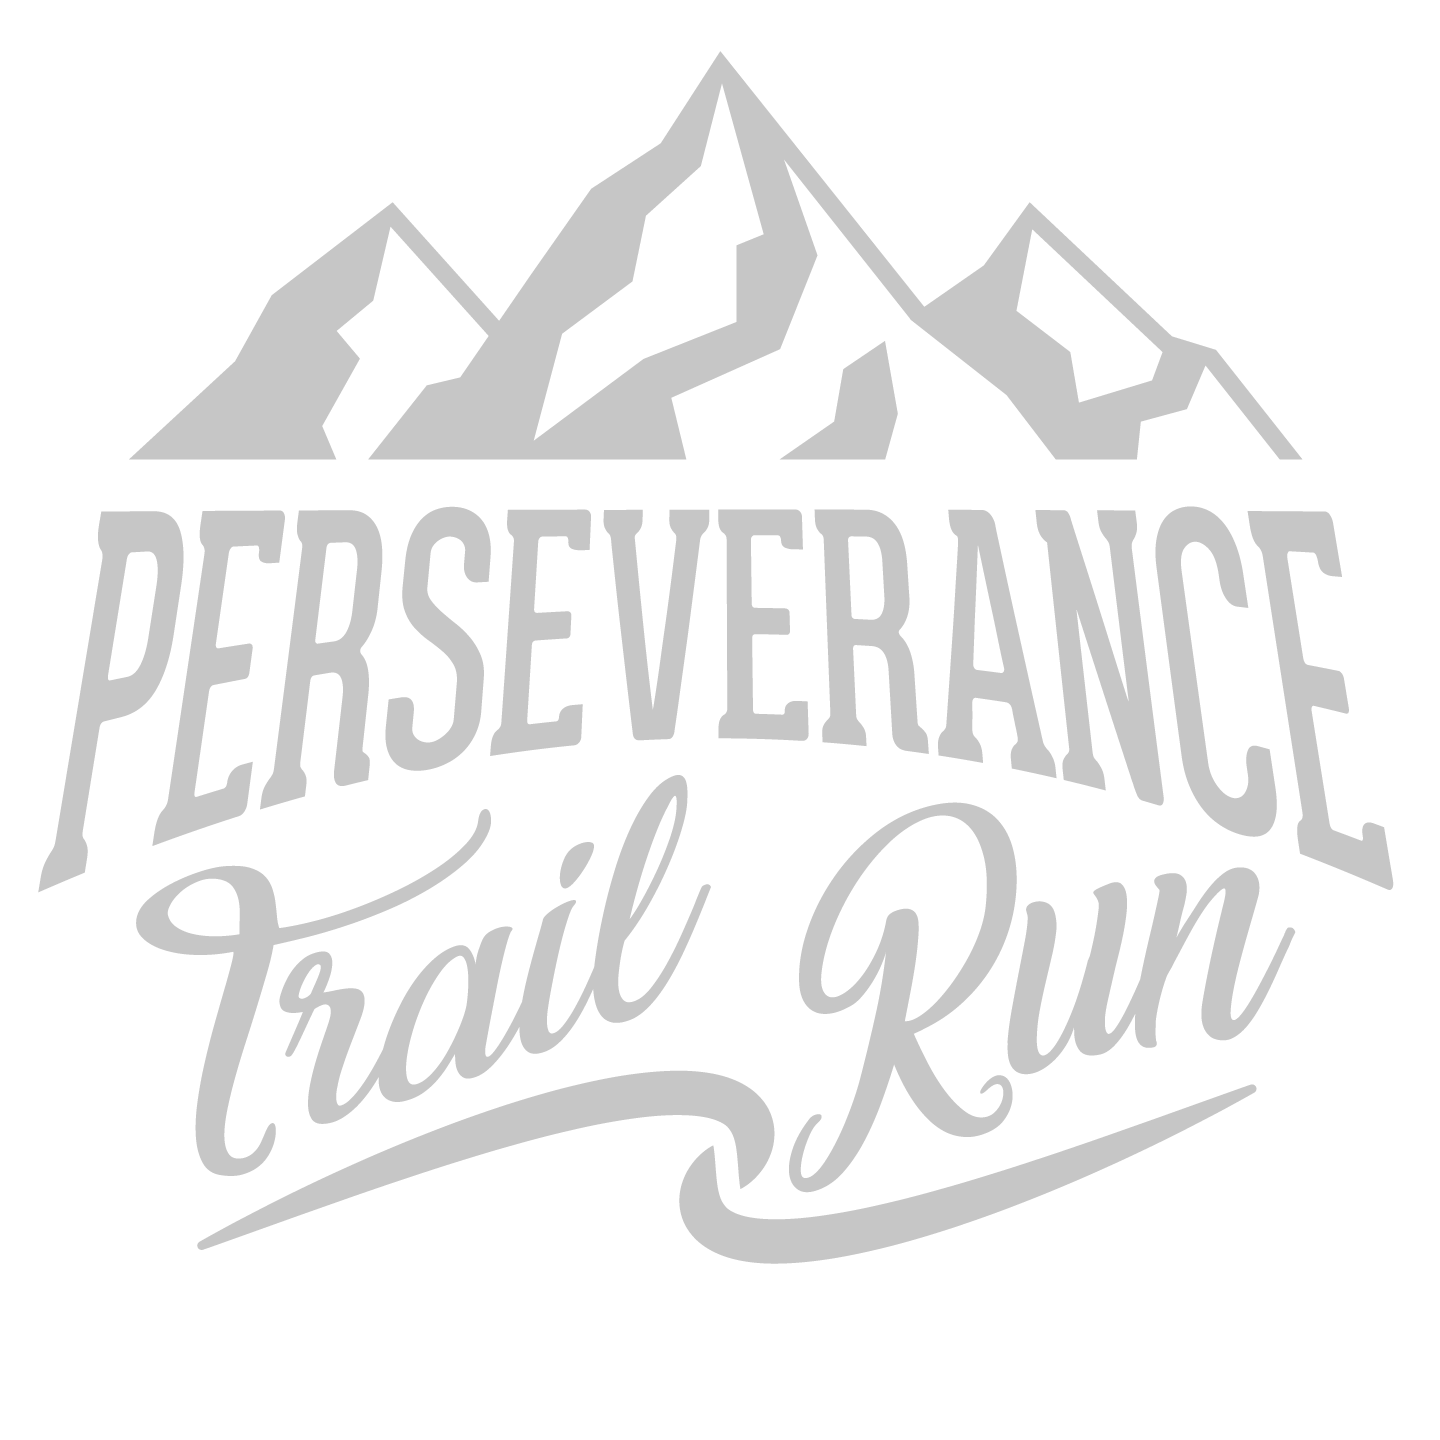 Perseverance_Logo_white.png